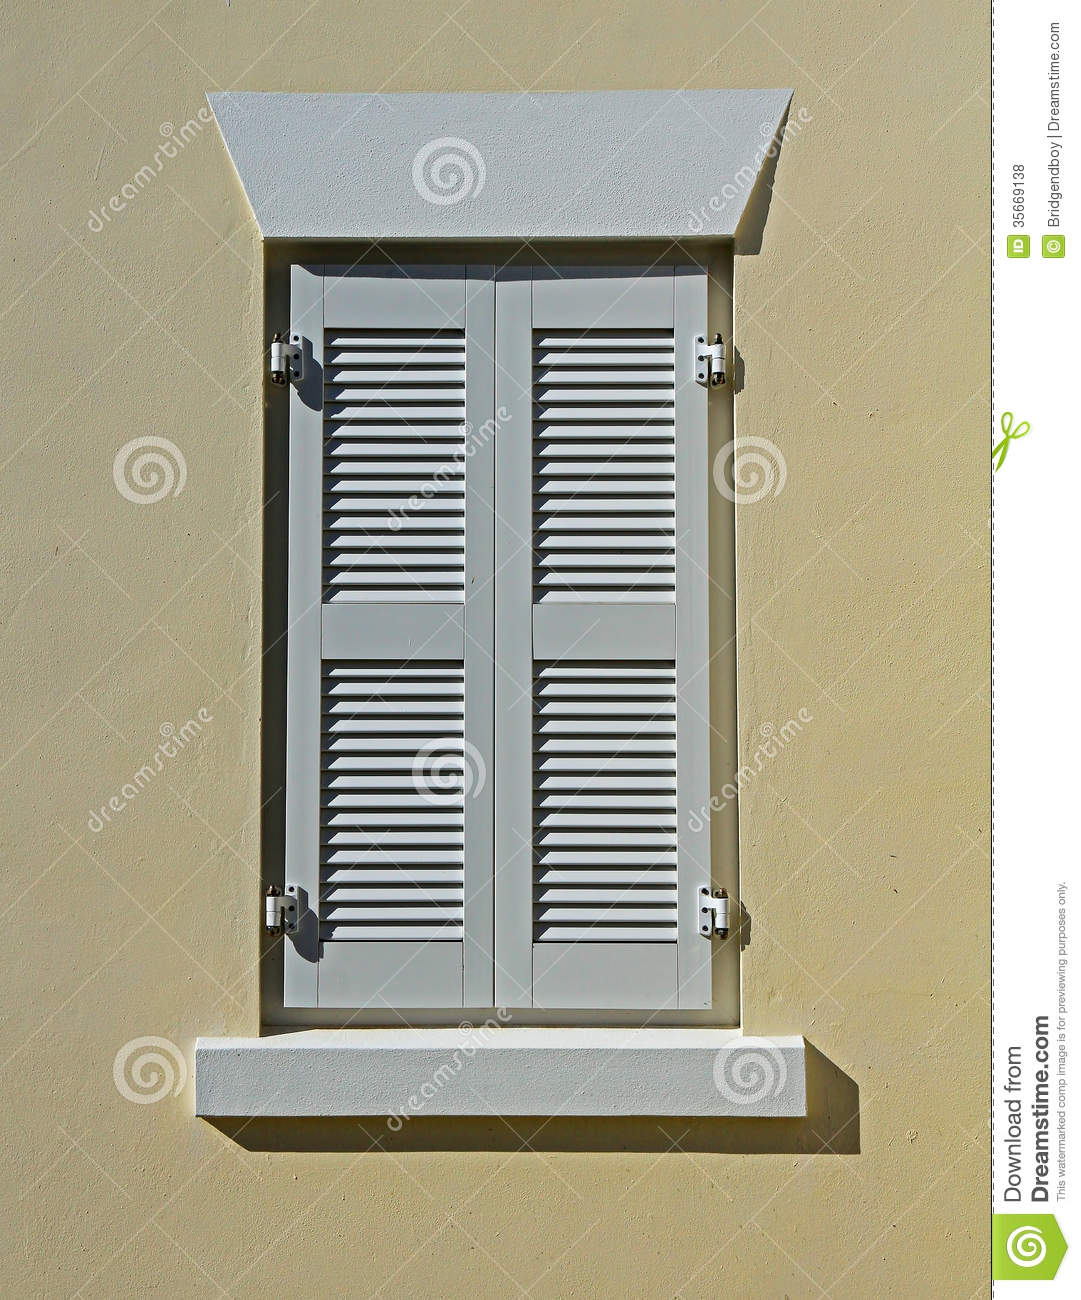 White Window Shutters On A Cream Wall Royalty Free Stock Photos Image 35669138